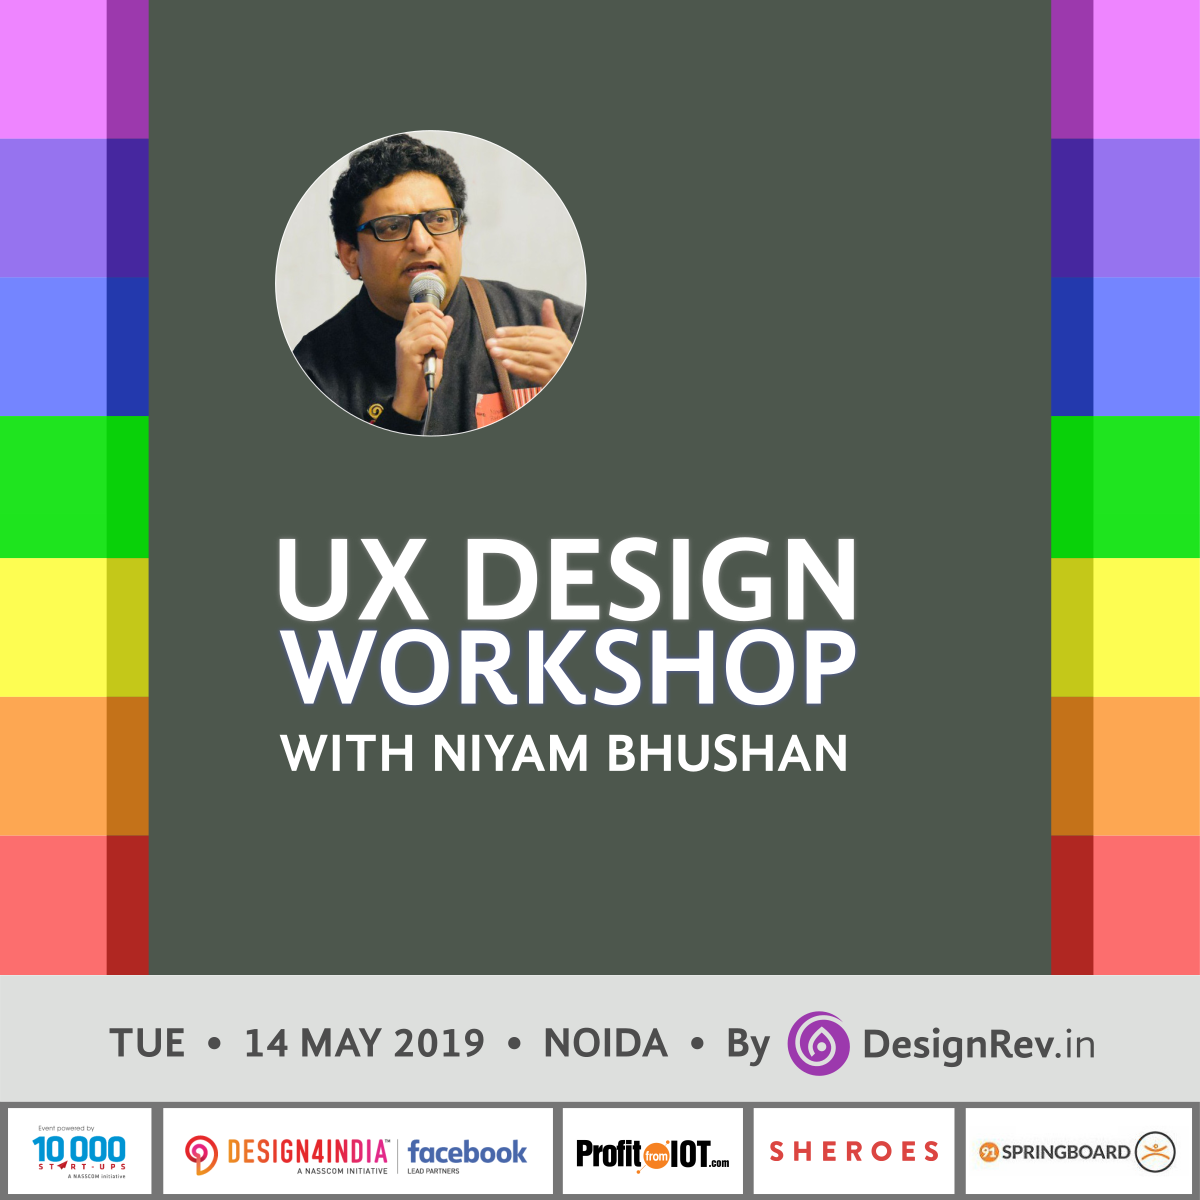 42nd UX Design Workshop @ 91Springboard, Sec 1, Noida. 900-1800 hrs. Tuesday, 14th May 2019